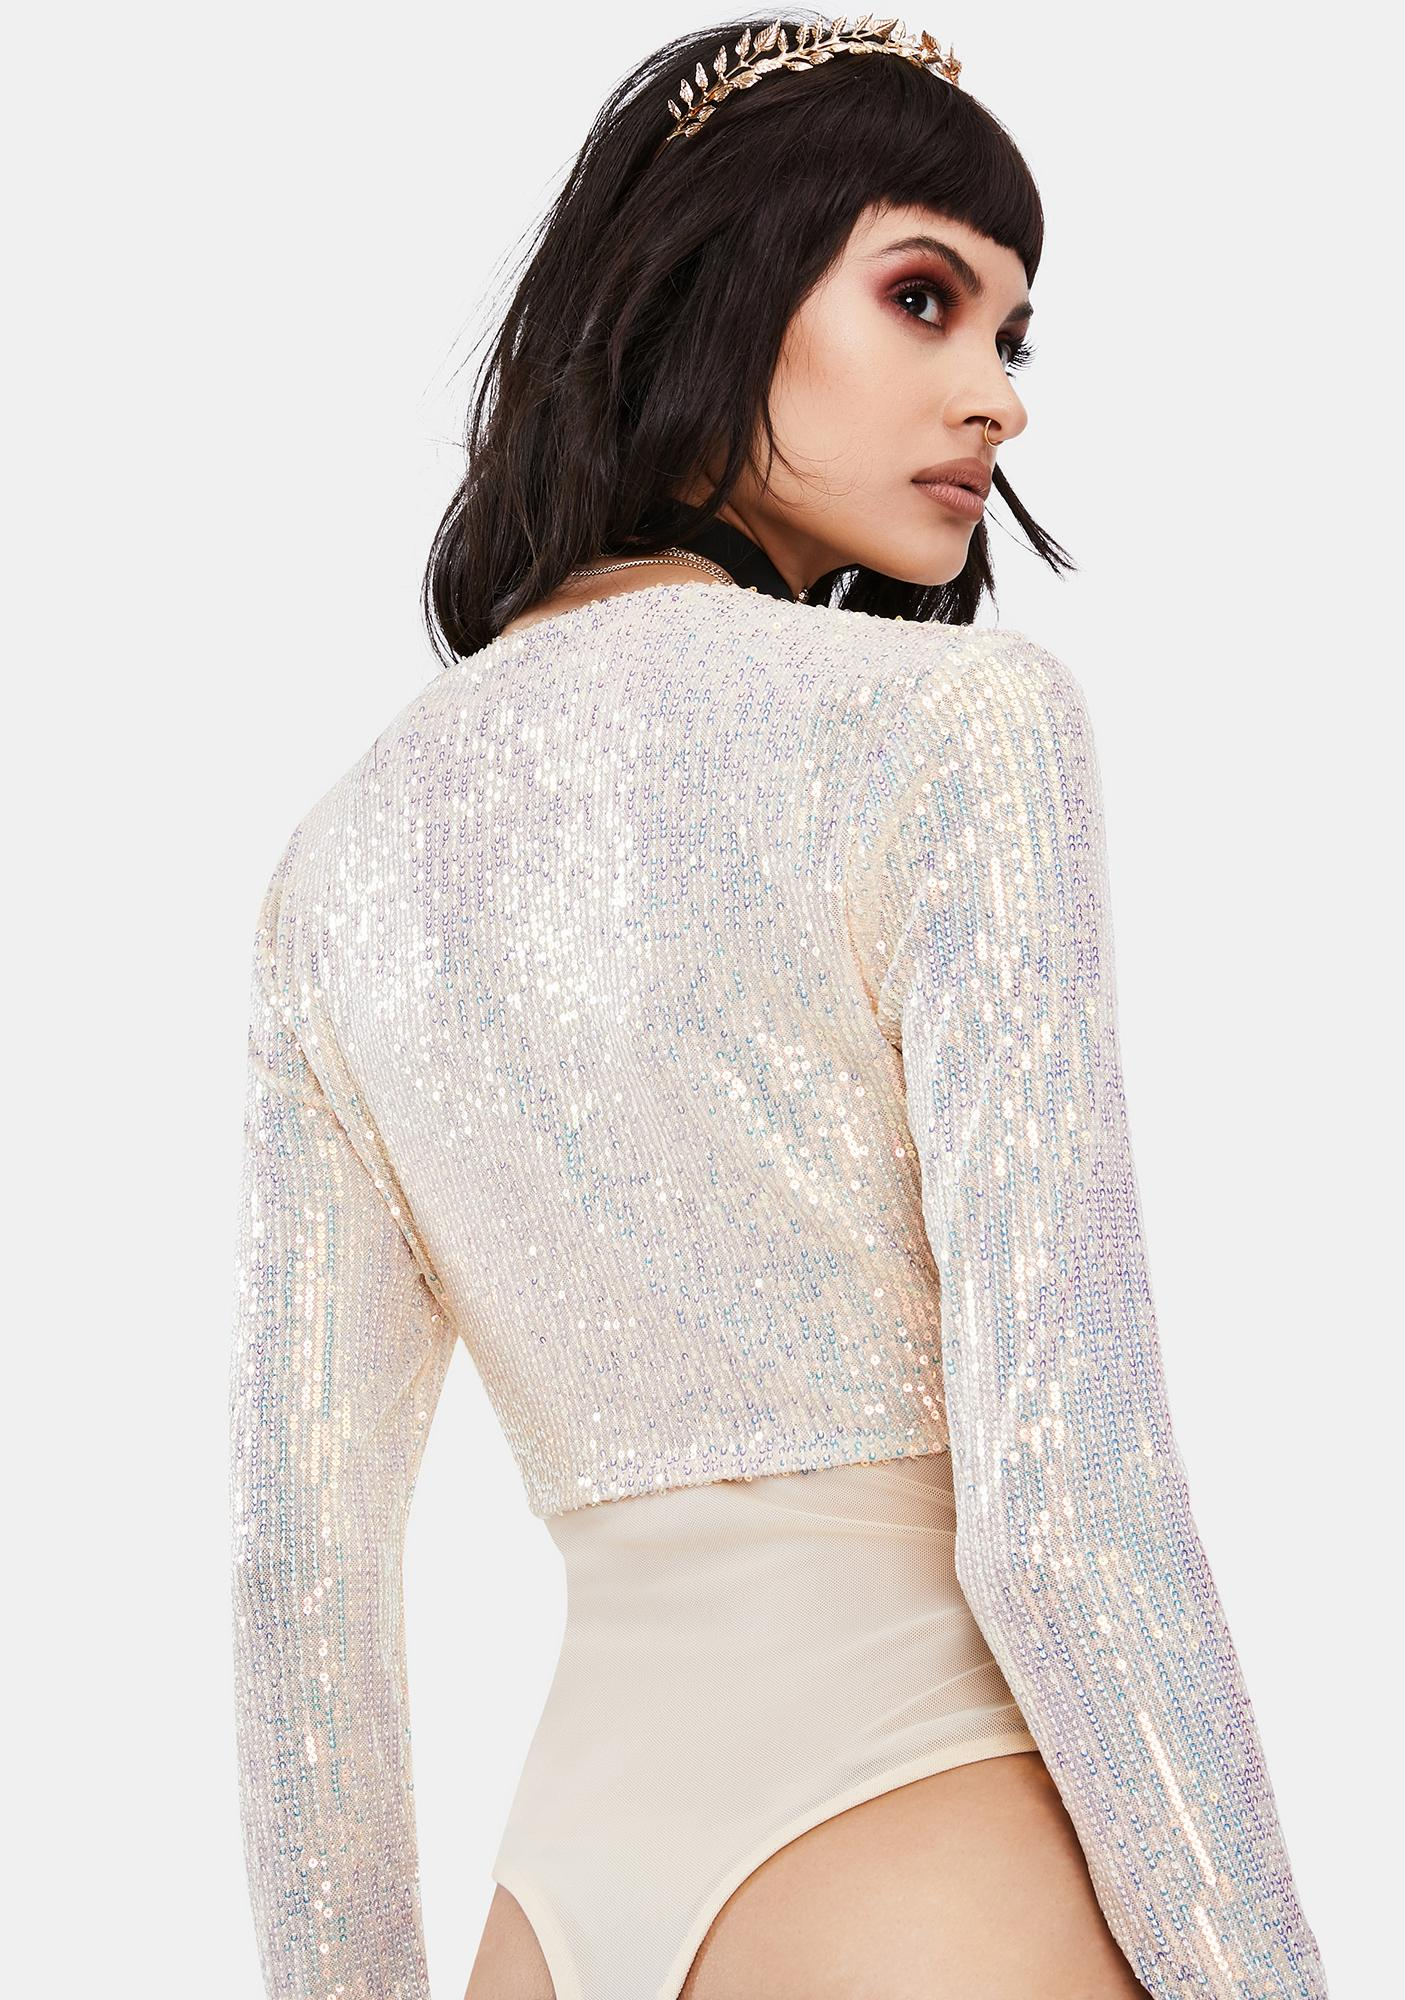 Opal Glam Moment Sequin Top And Mesh Bodysuit Set